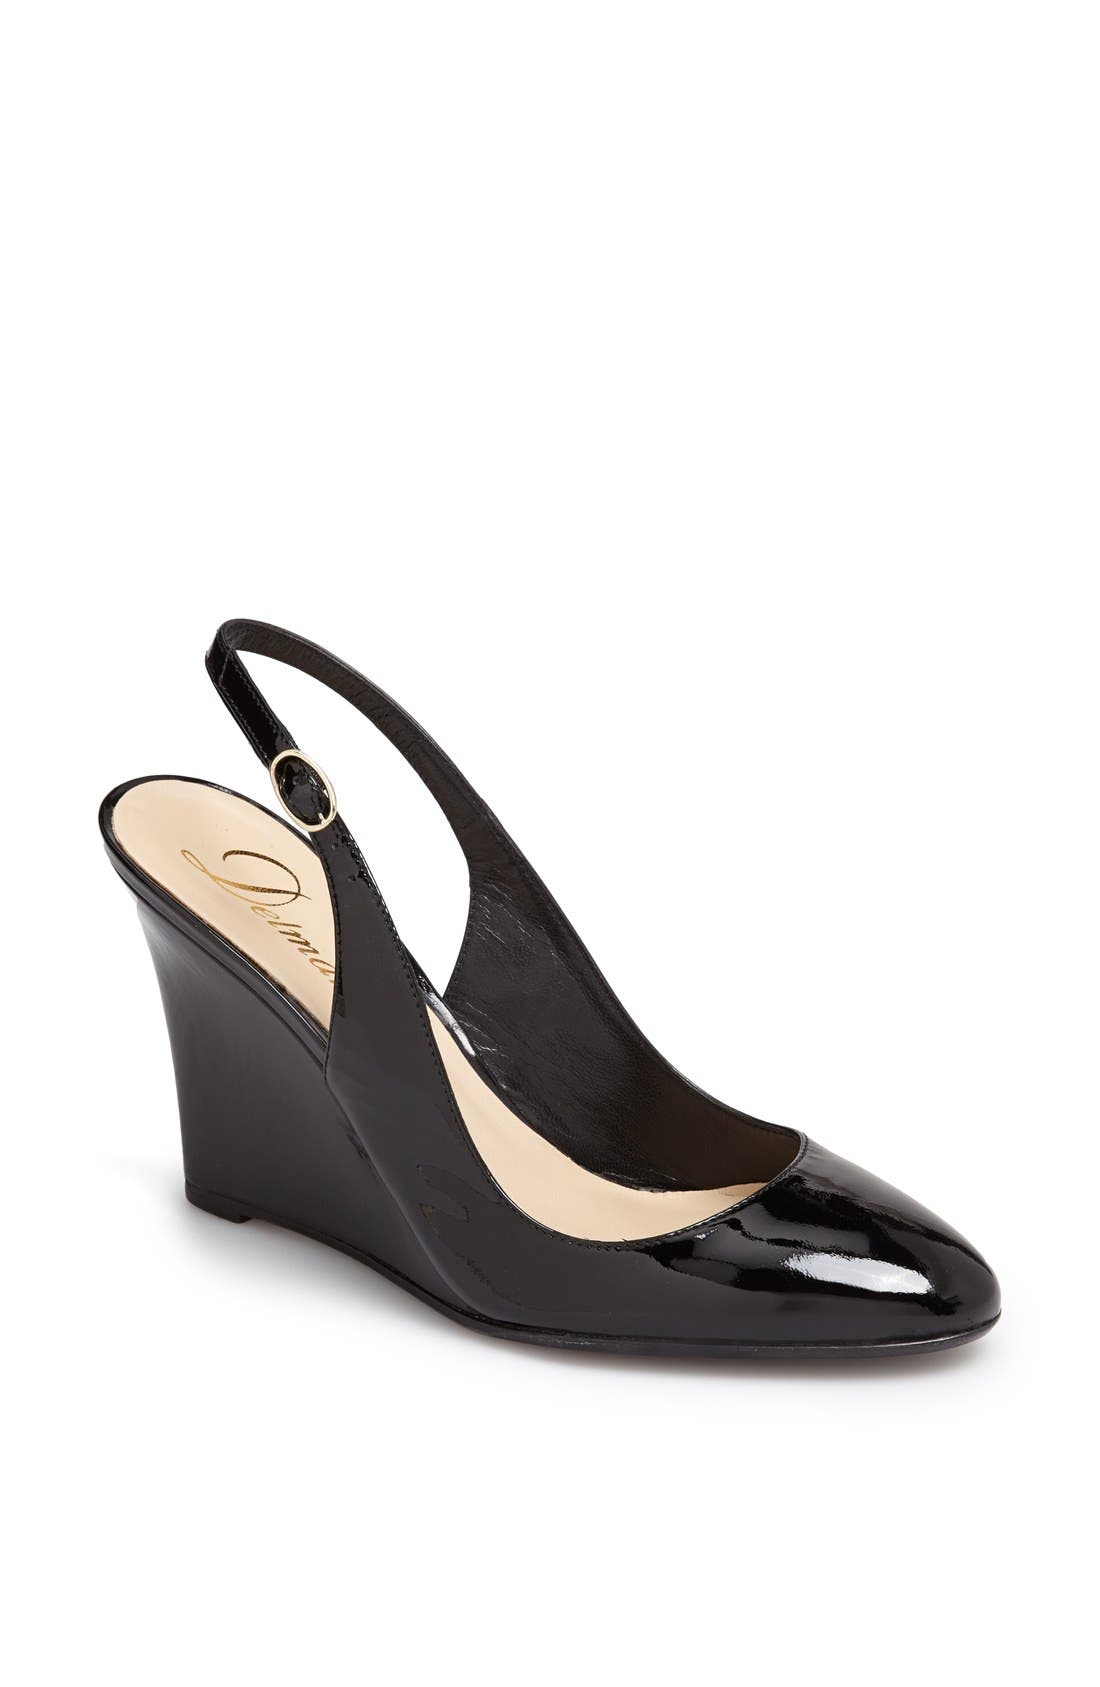 Alternate Image 1 Selected - Delman 'Rosa' Slingback Almond Toe Wedge